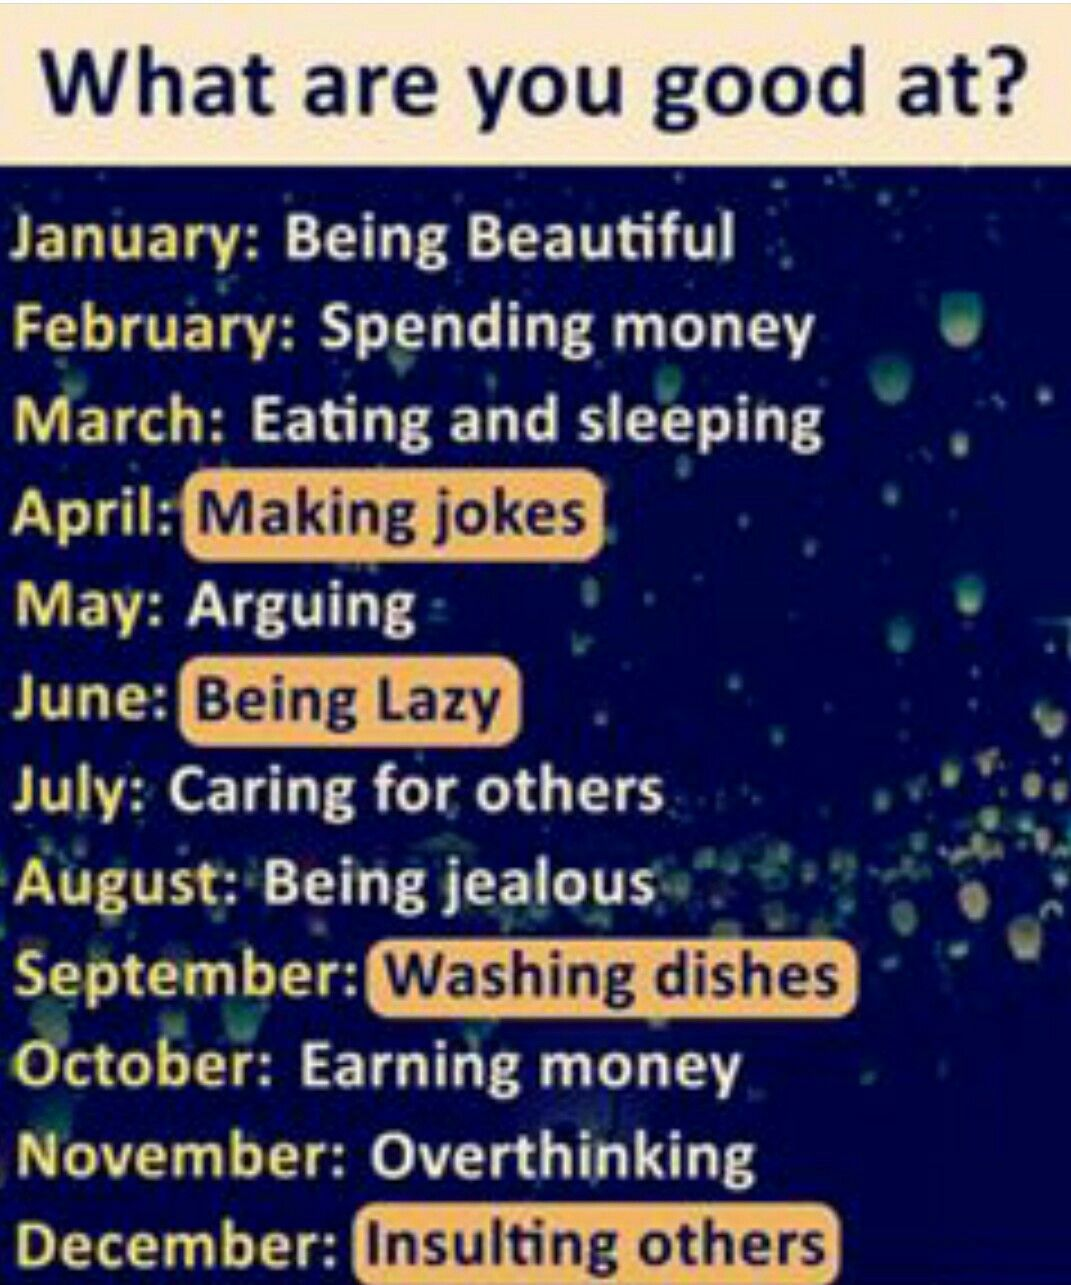 October That S Me I M So Good At Earning Money Birthday Quotes For Me Birthday Quotes Funny Birthday Quotes Funny For Her